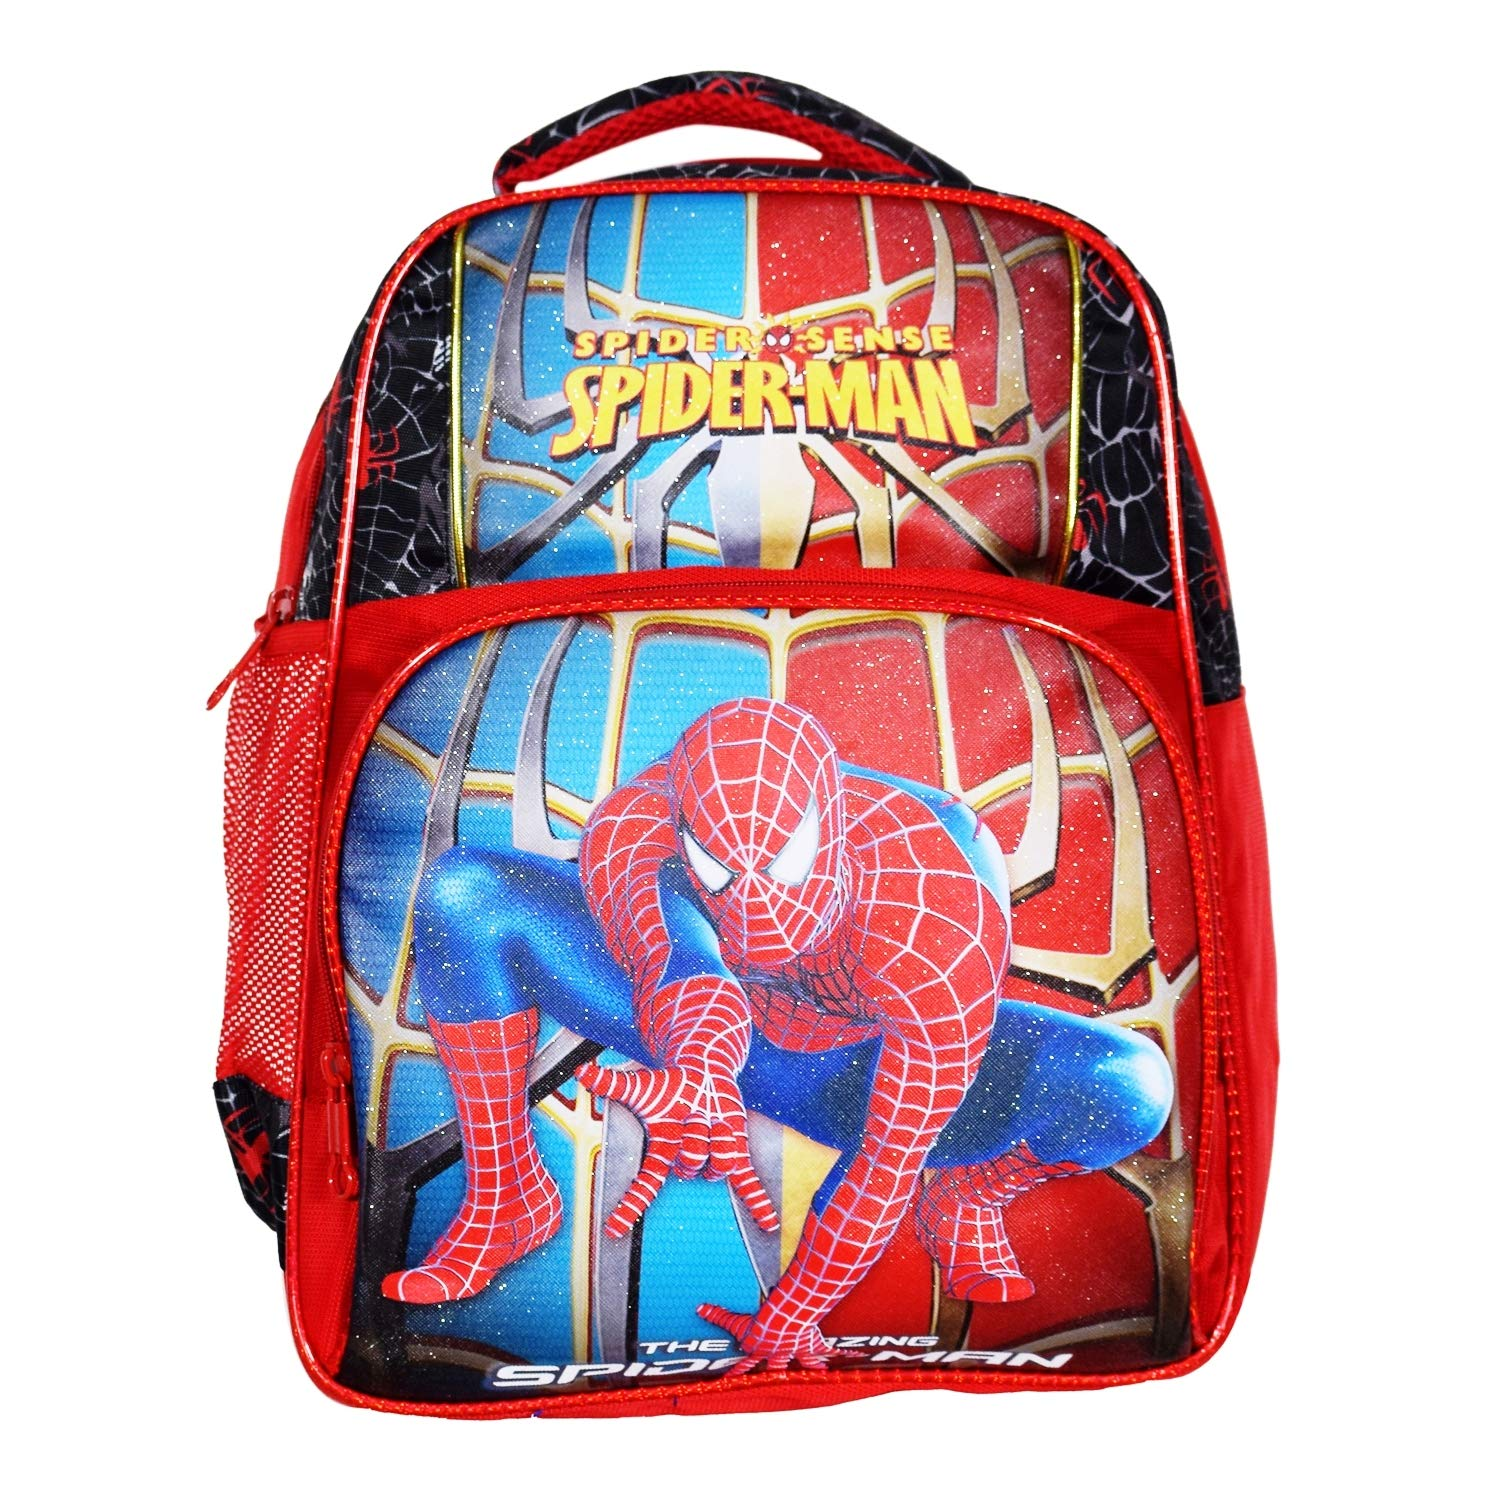 BACKPACK with COIN BAG WALLET TRAVEL LUGGAGE ~ Spiderman 2